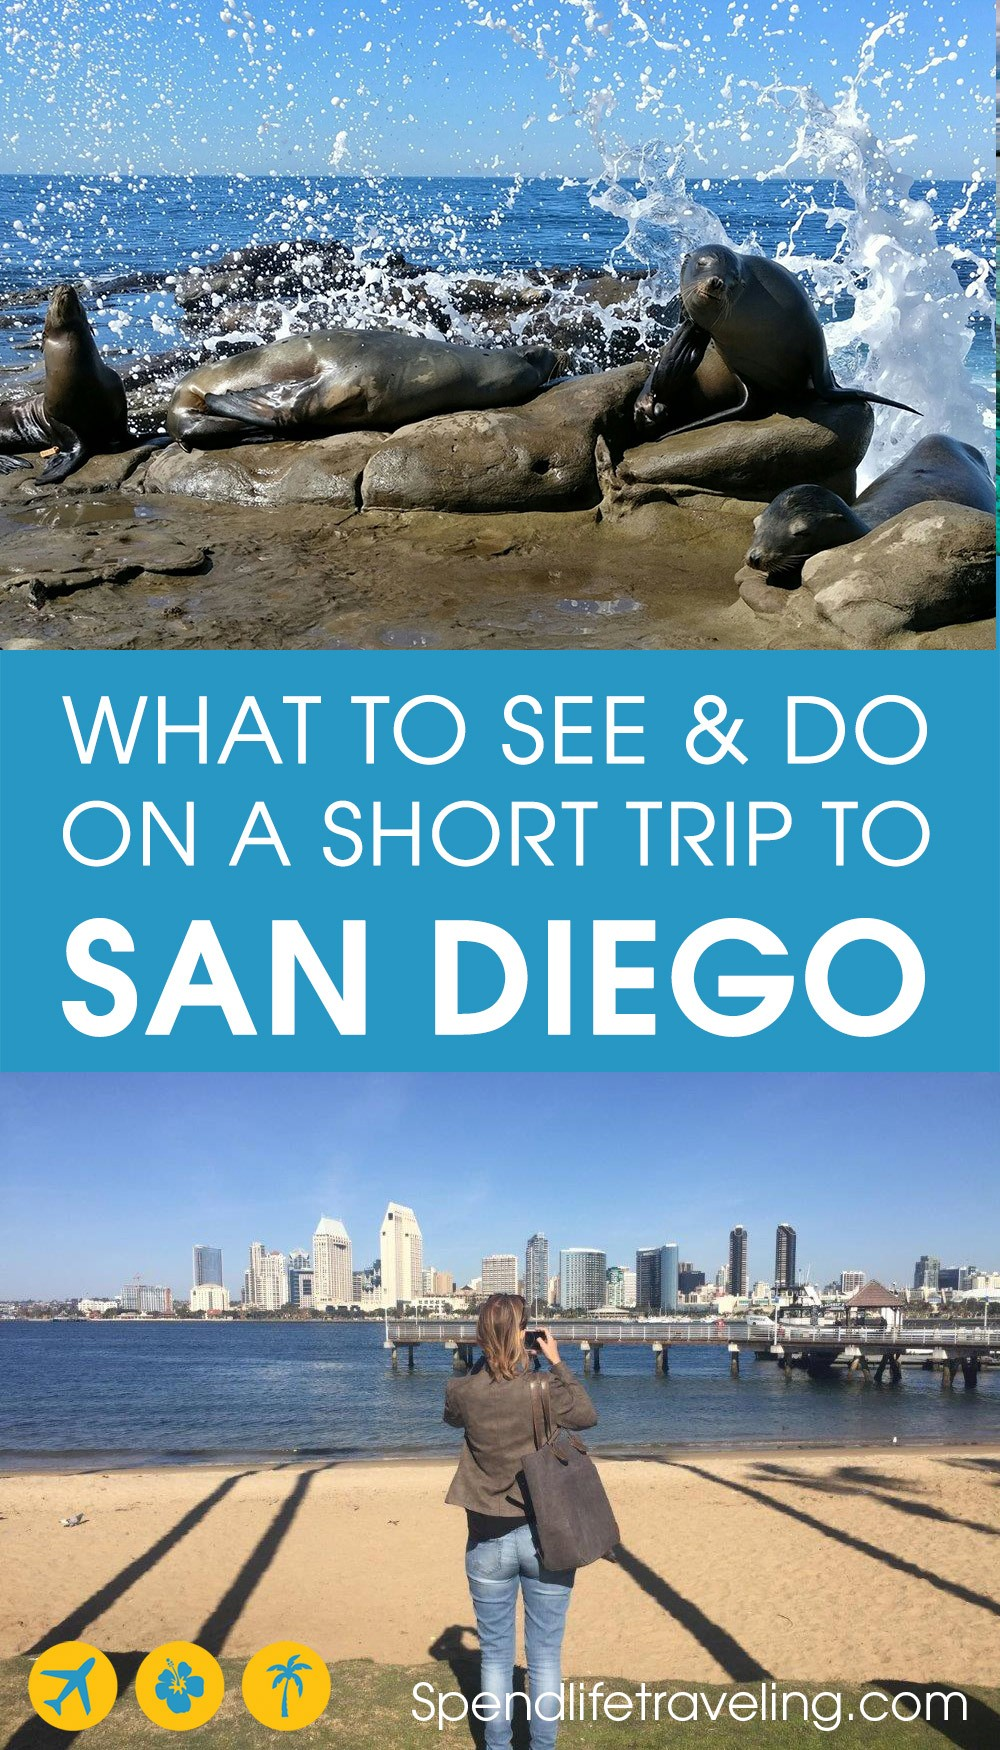 San Diego is a beautiful city in Southern California, which is often overlooked by travelers. But if you visit California I highly recommend spending at least a few days in San Diego! And these are 11 fun things to do in San Diego - a practical travel guide with map. #SanDiego #California #visitSanDiego